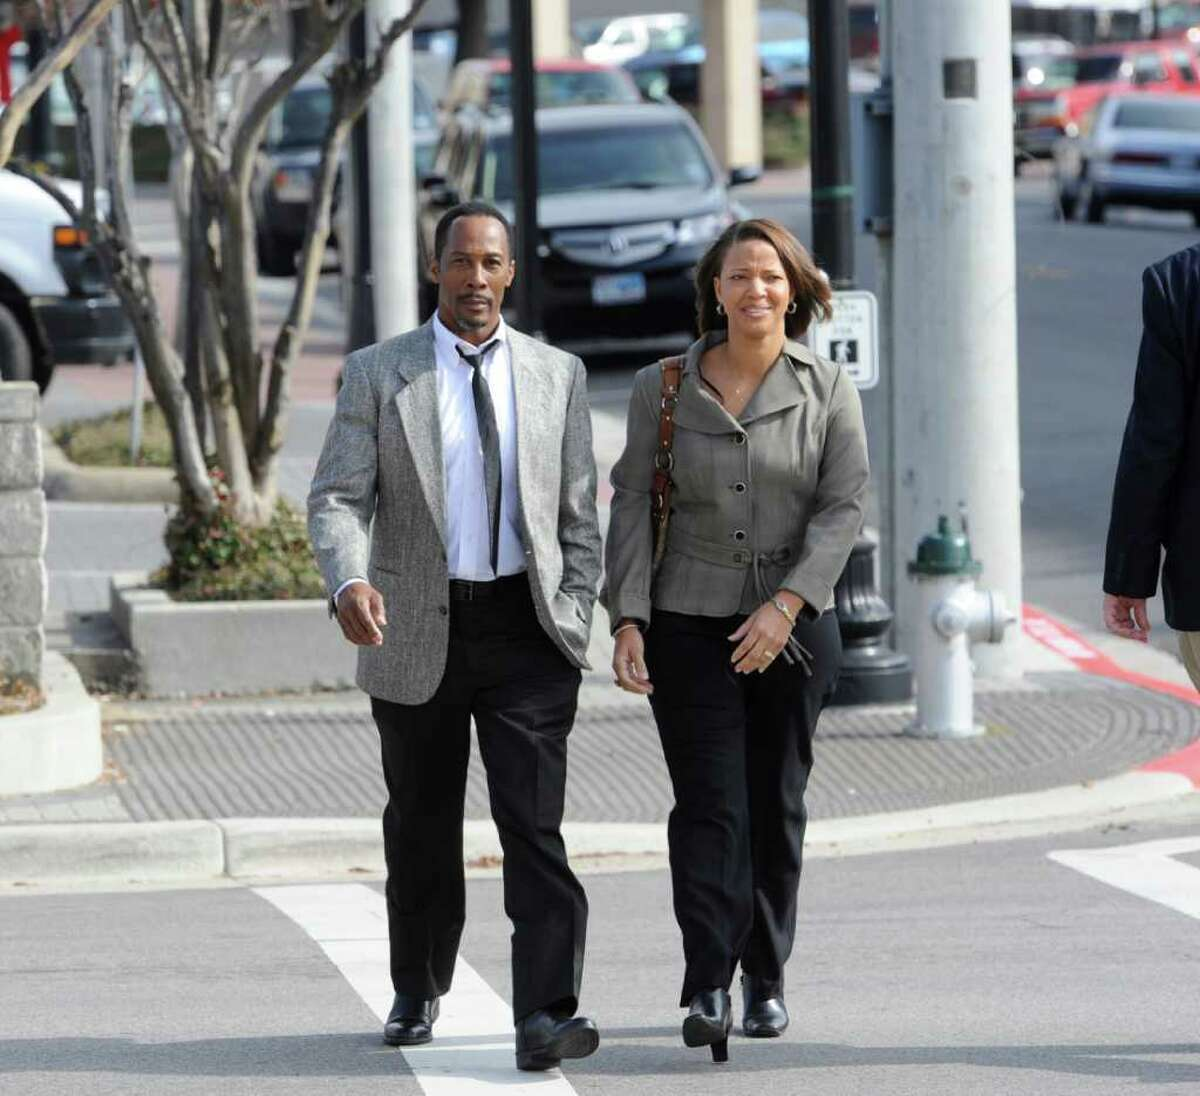 Calvin Walker, left, the Beaumont school district's electrician of record, and his wife Stacey, right, come back from lunch Monday afternoon December 12, heading to the main entrance of the Federal Courthouse. Walker is charged with fraud and overbilling the Beaumont Independent School District. Dave Ryan/The Enterprise